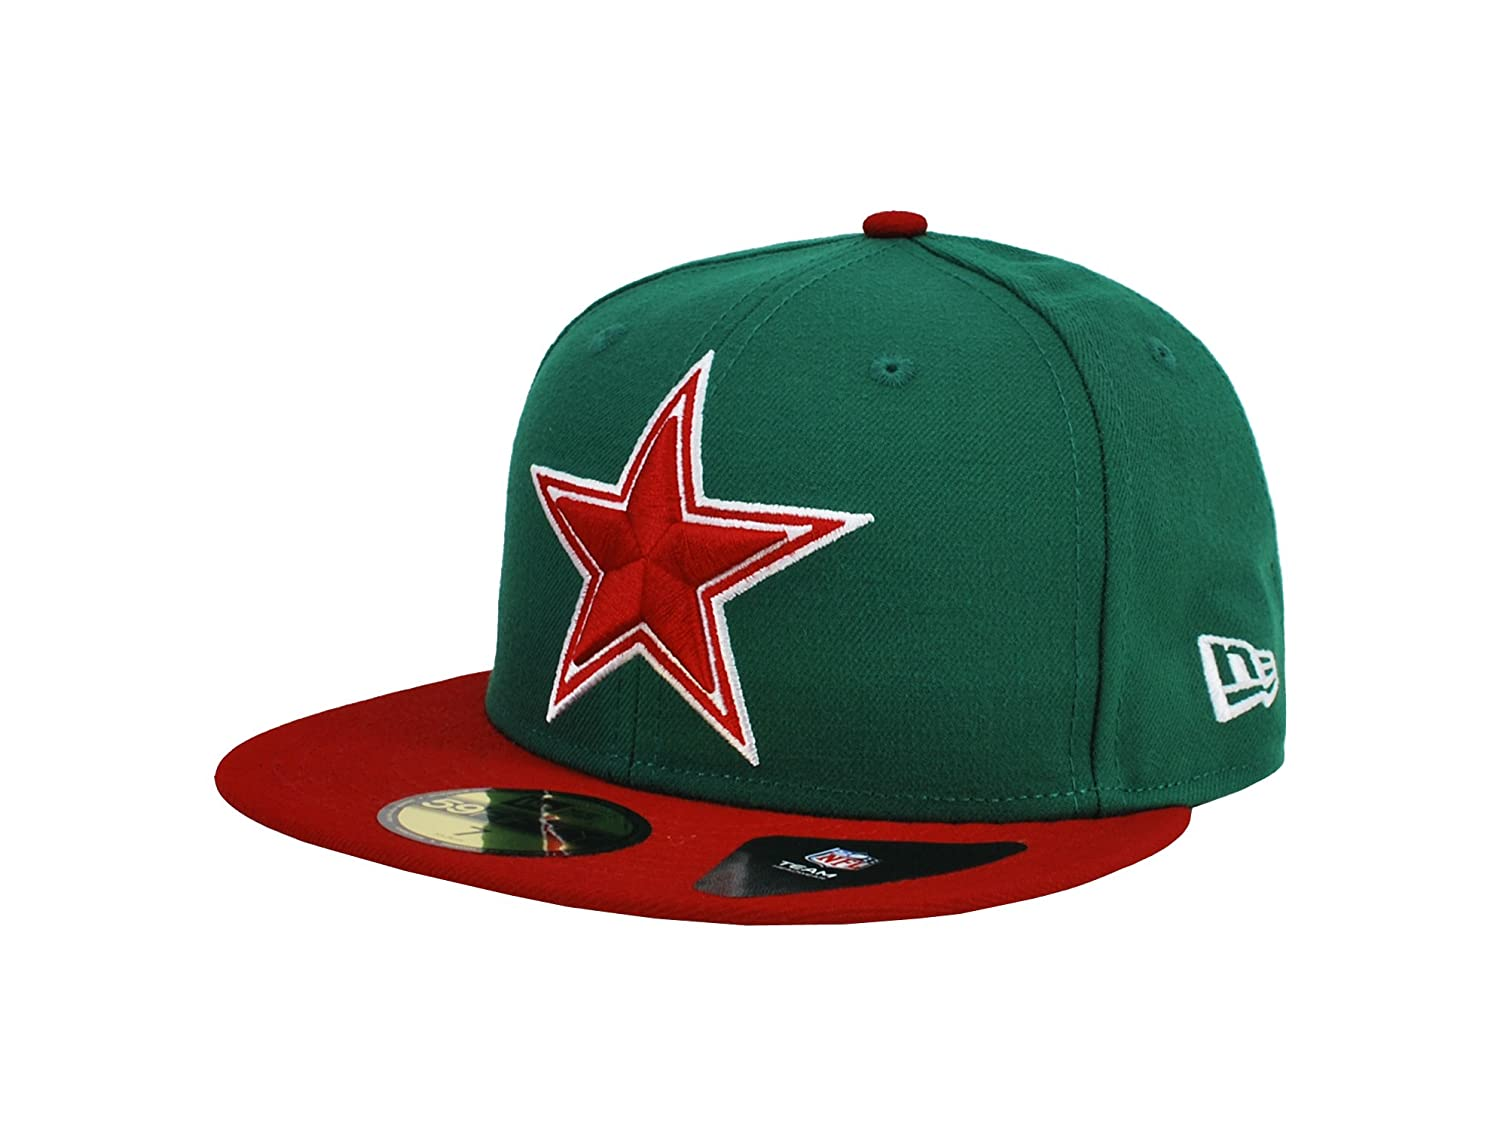 Amazon.com  New Era 59Fifty Hat Dallas Cowboys Mexico Flag Edition Green   Red Redux Fitted Cap (8)  Clothing d2a30c6358d